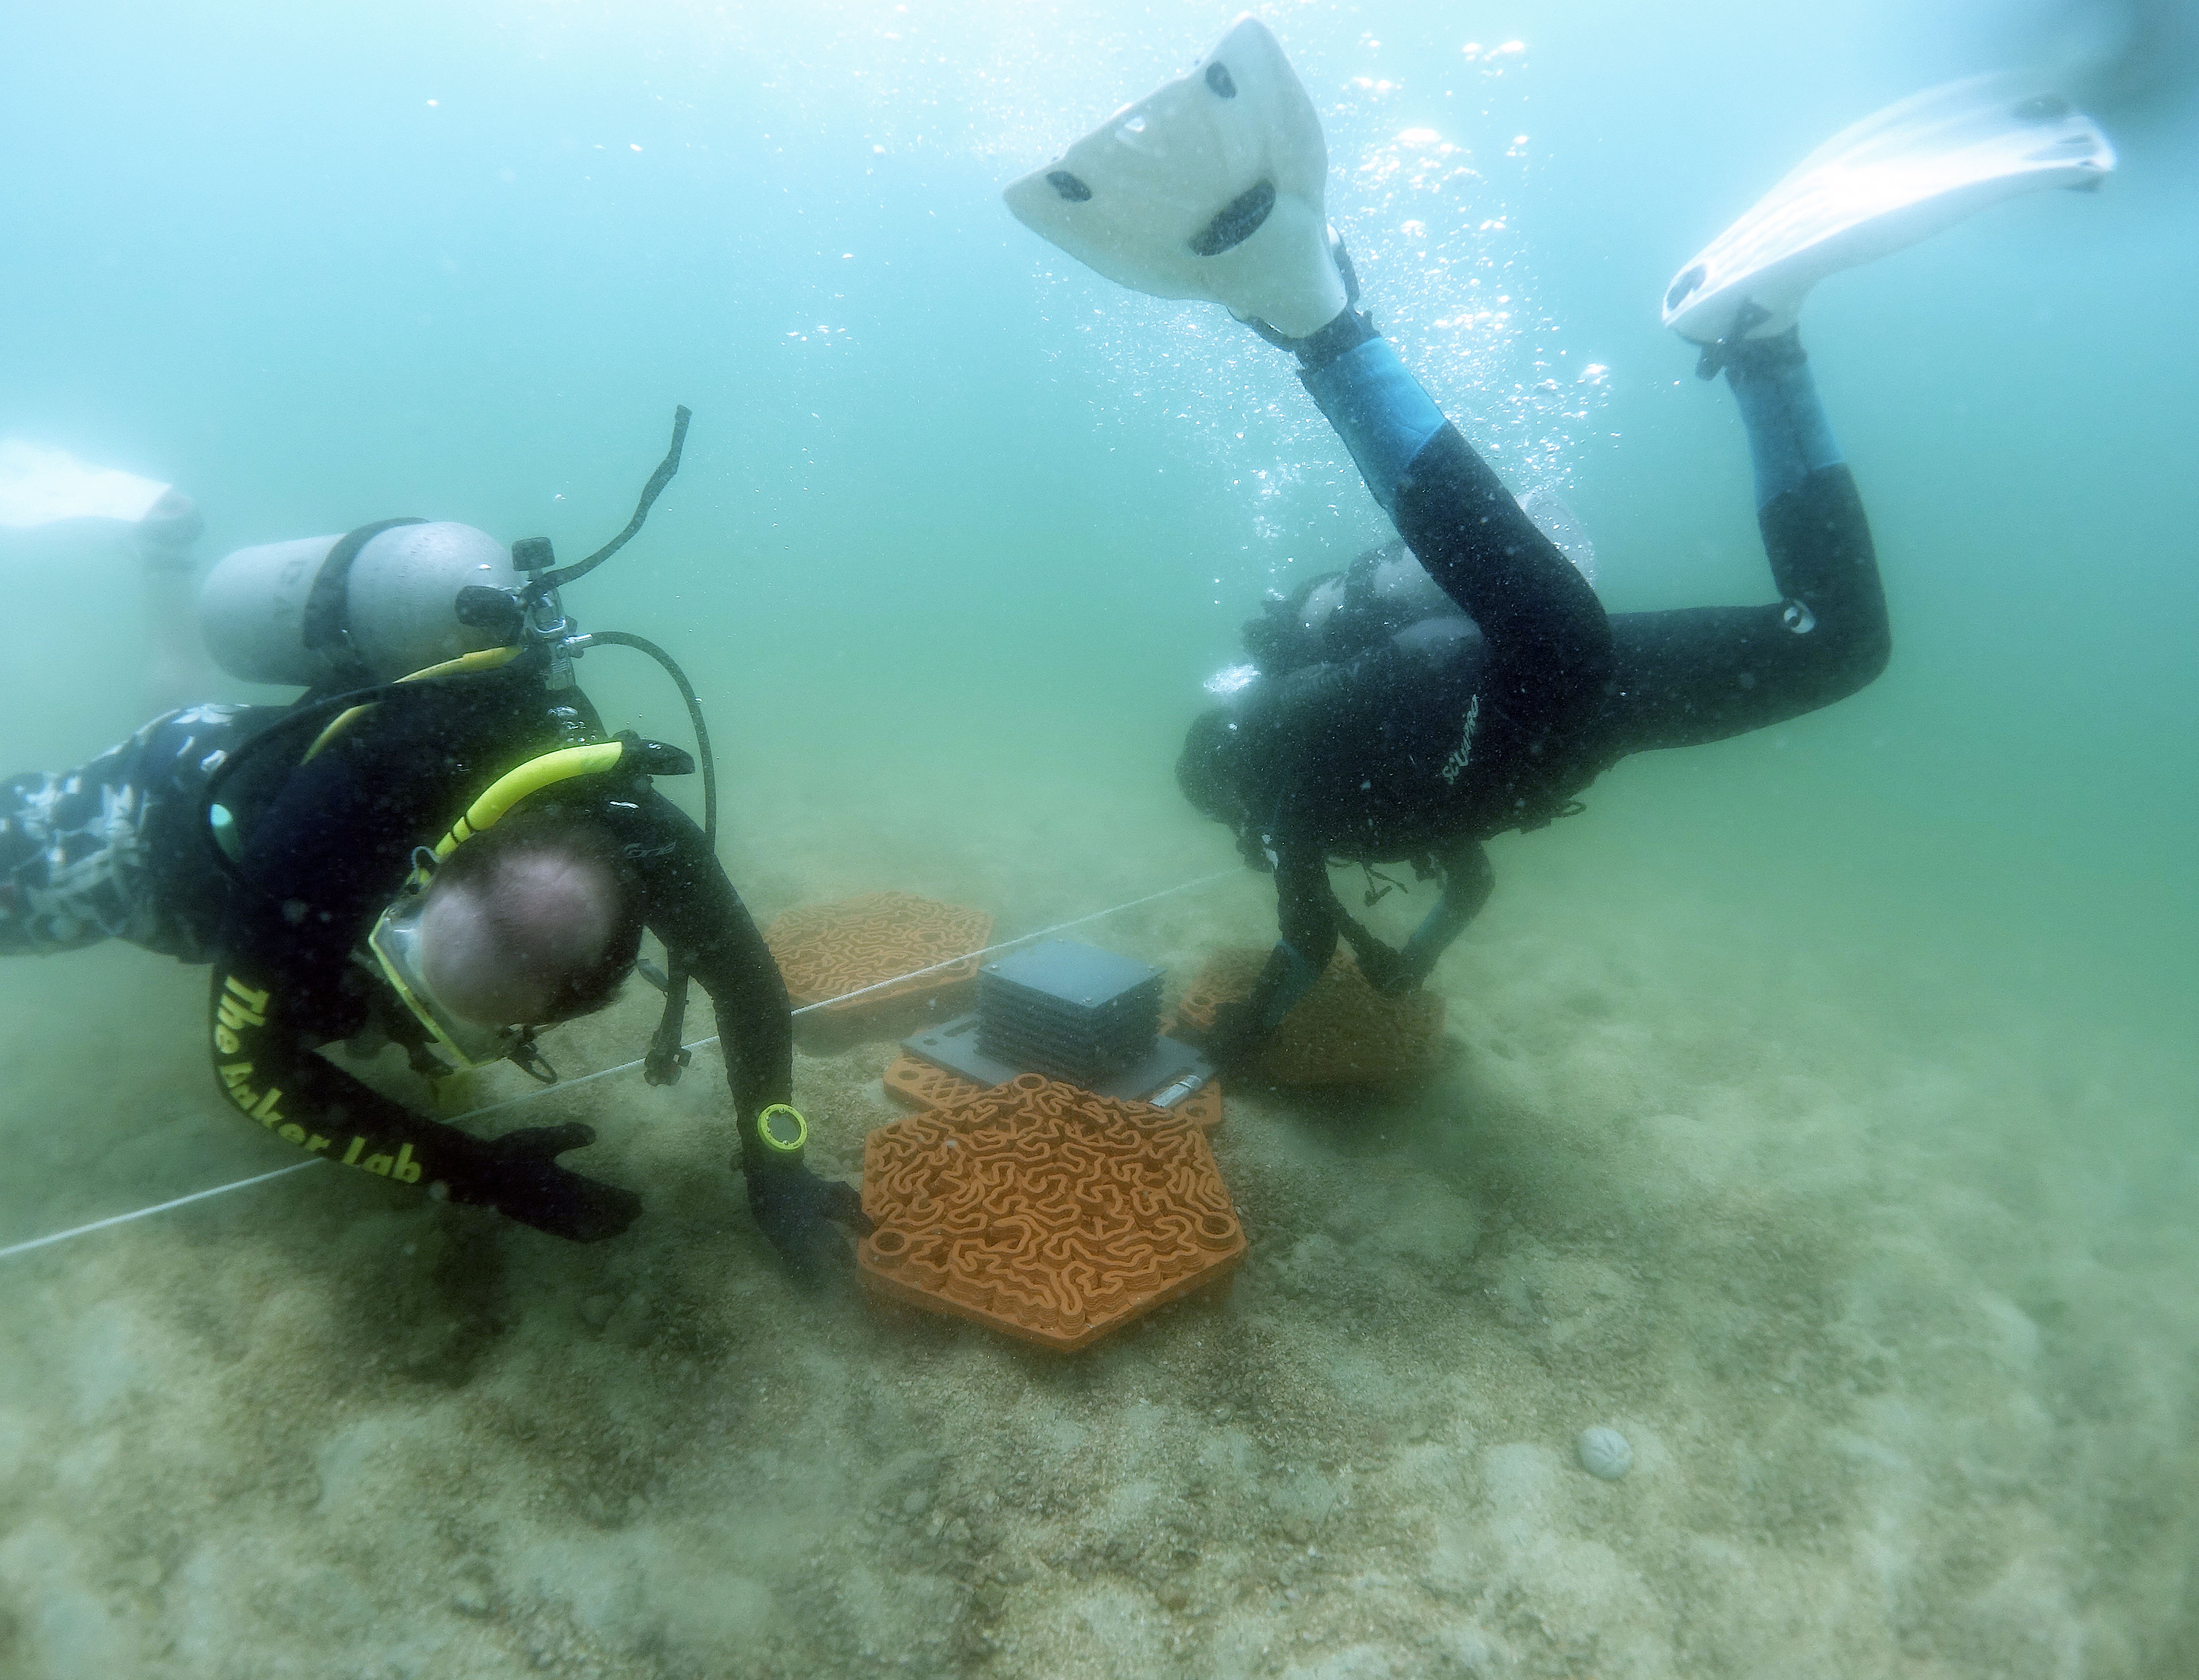 Researchers placing the tiles on the seafloor for coral attachment. Photo via Hong Kong University.